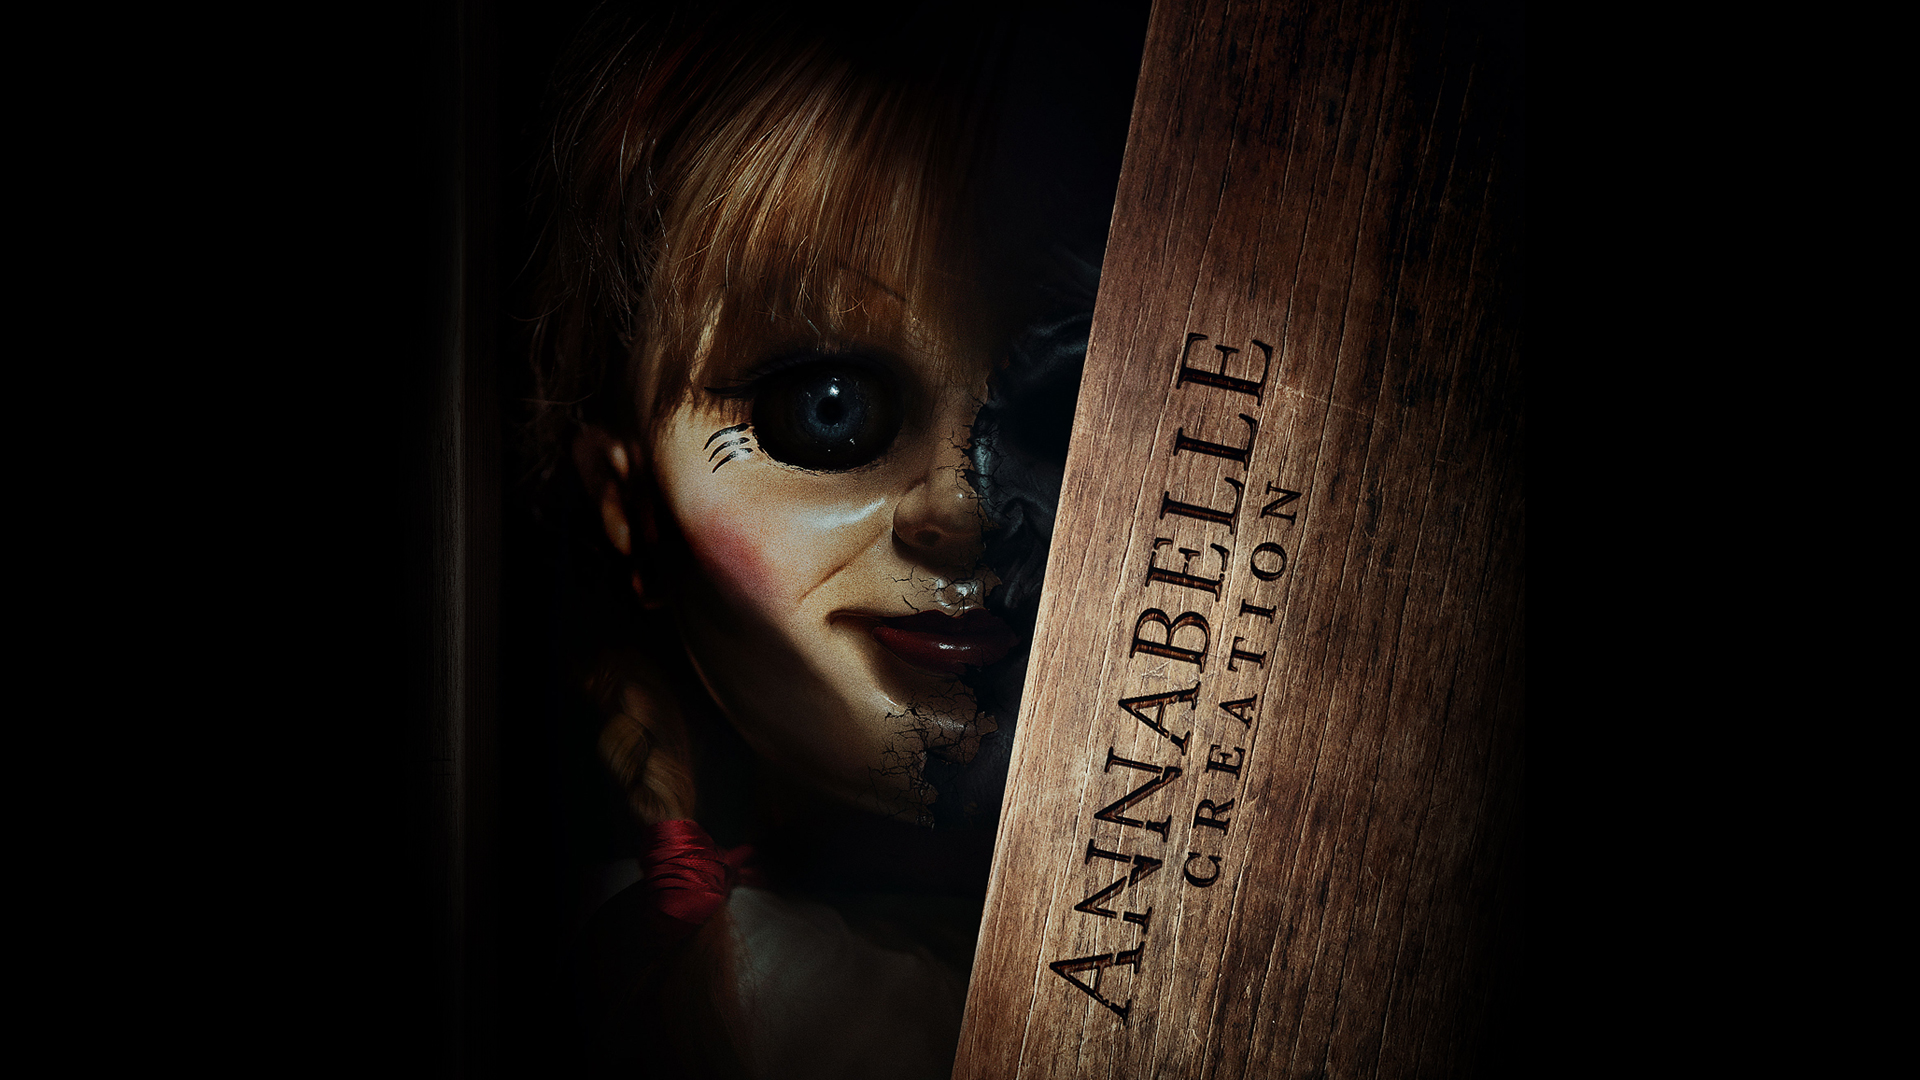 Full Hd Live Wallpaper For Laptop Annabelle Creation Images We Live Entertainment